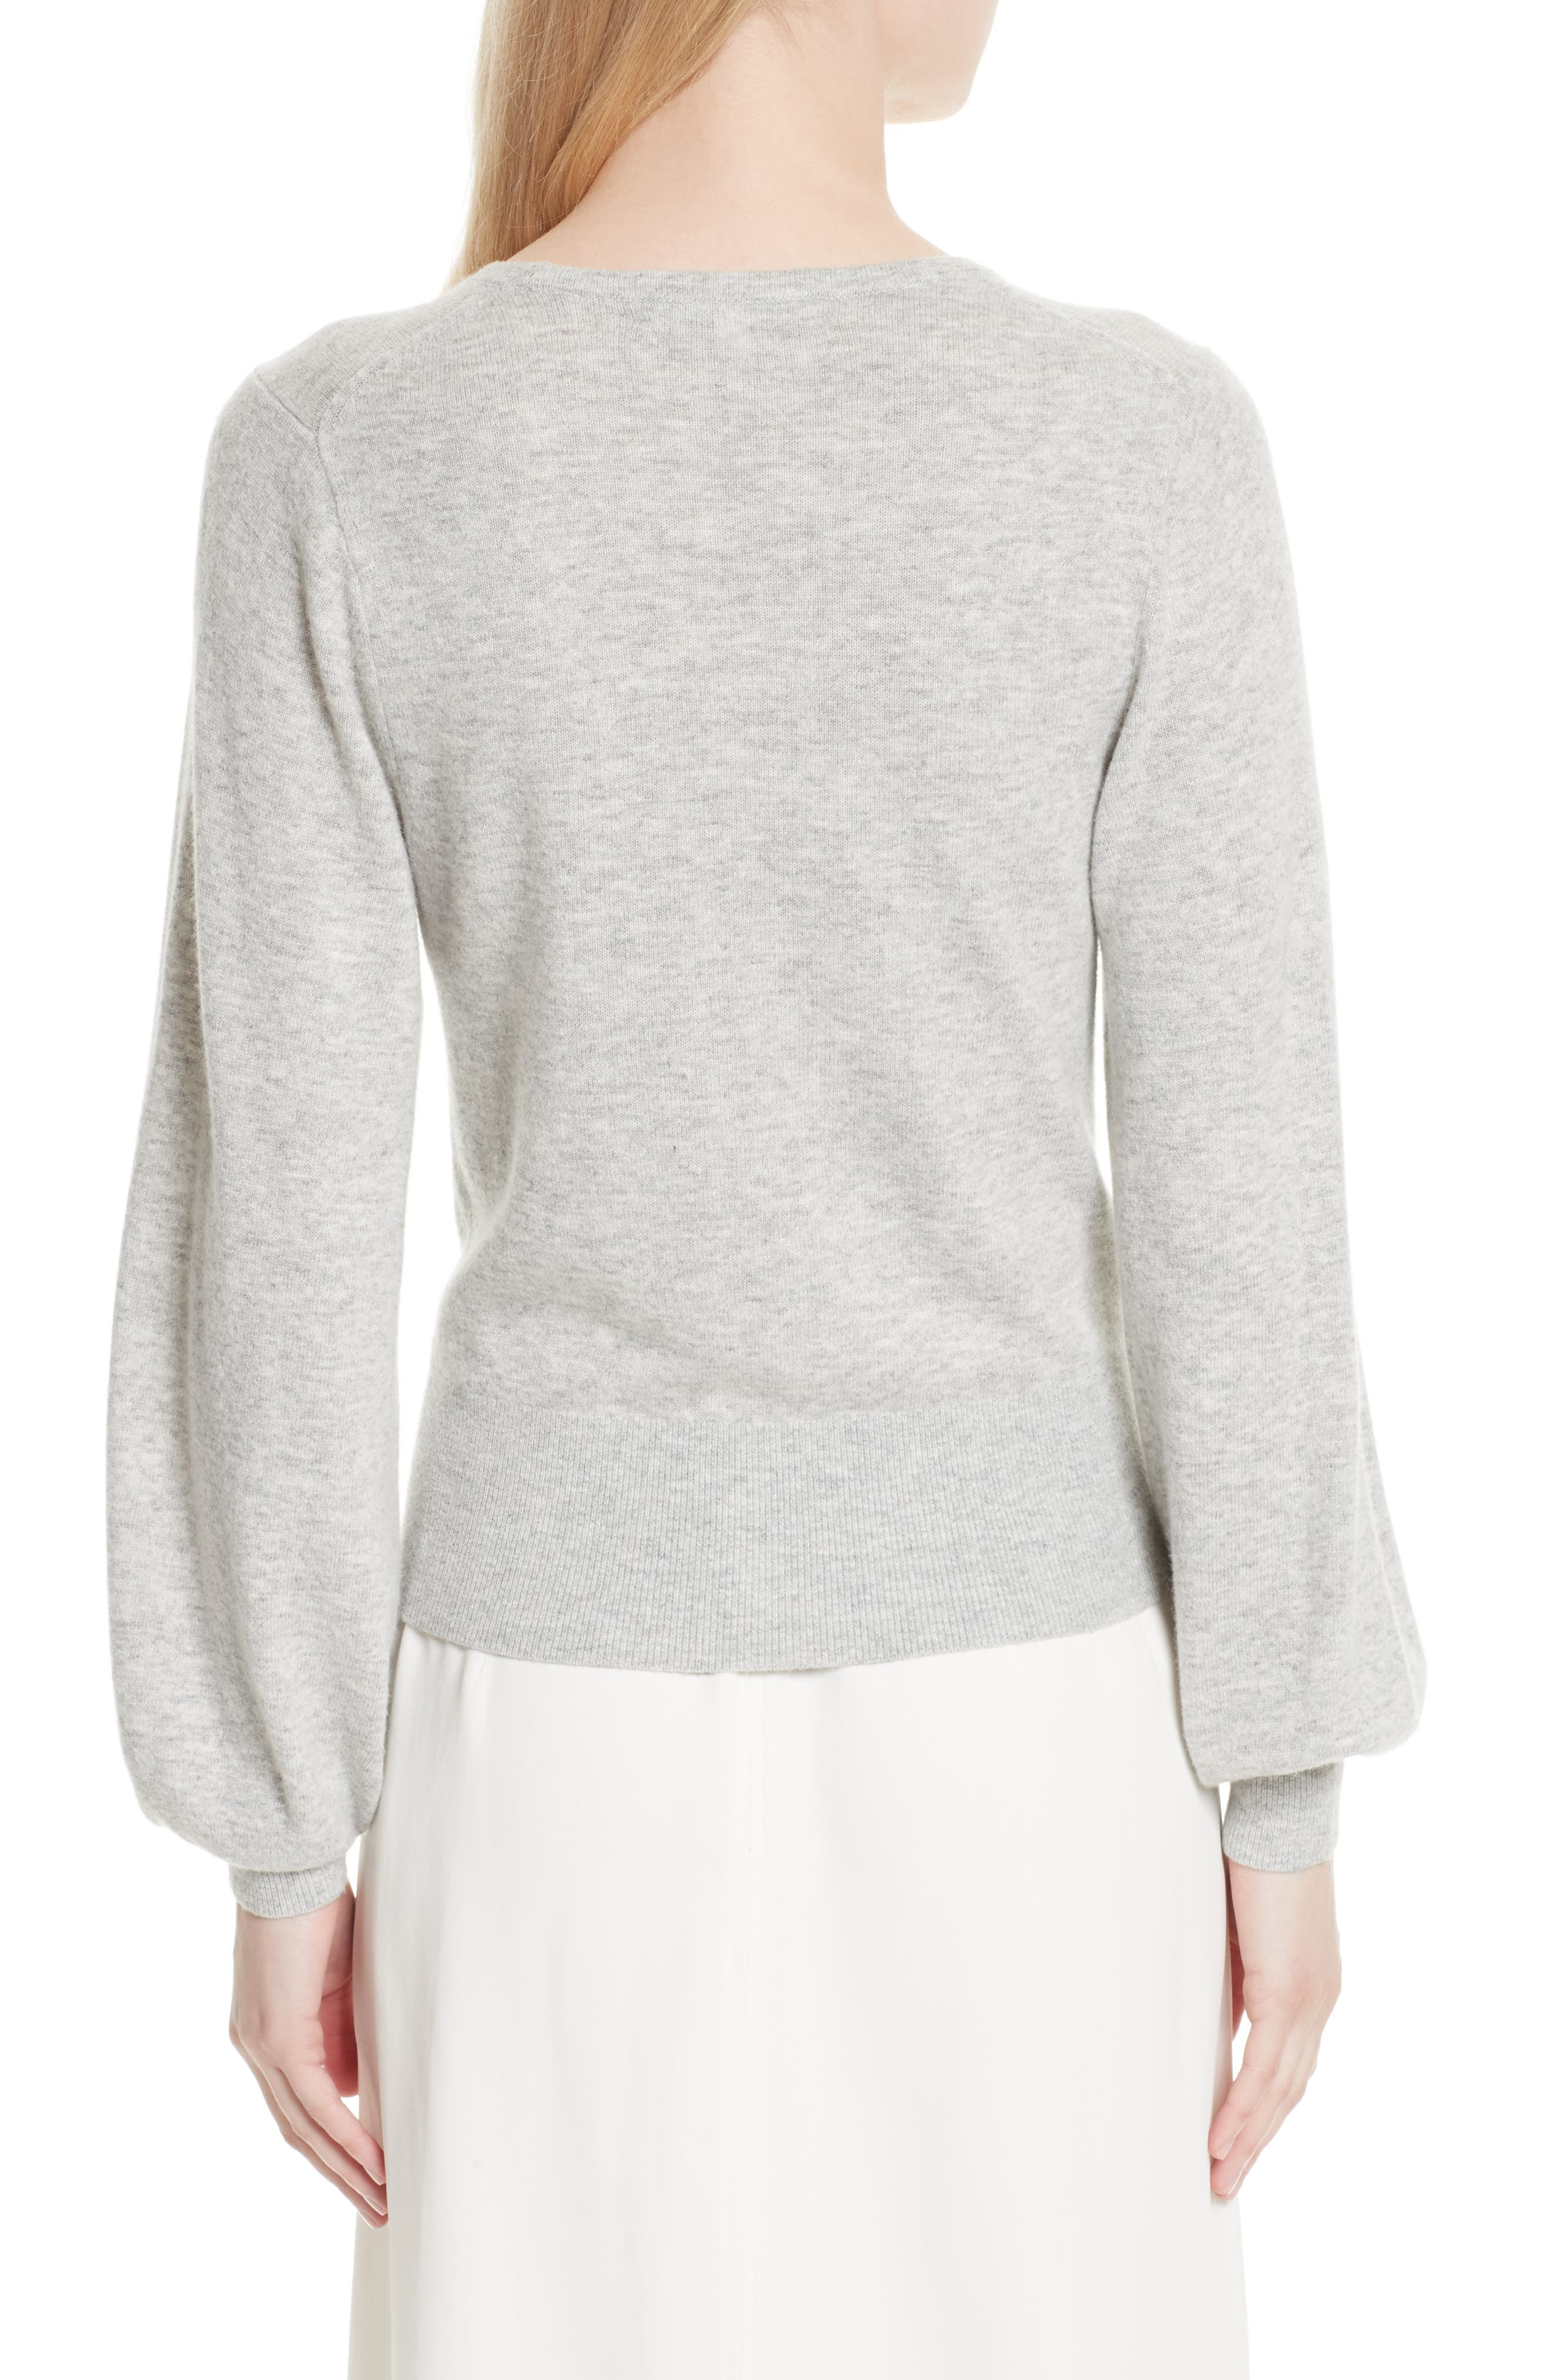 Bretta Sweater,                             Alternate thumbnail 3, color,                             Heather Grey